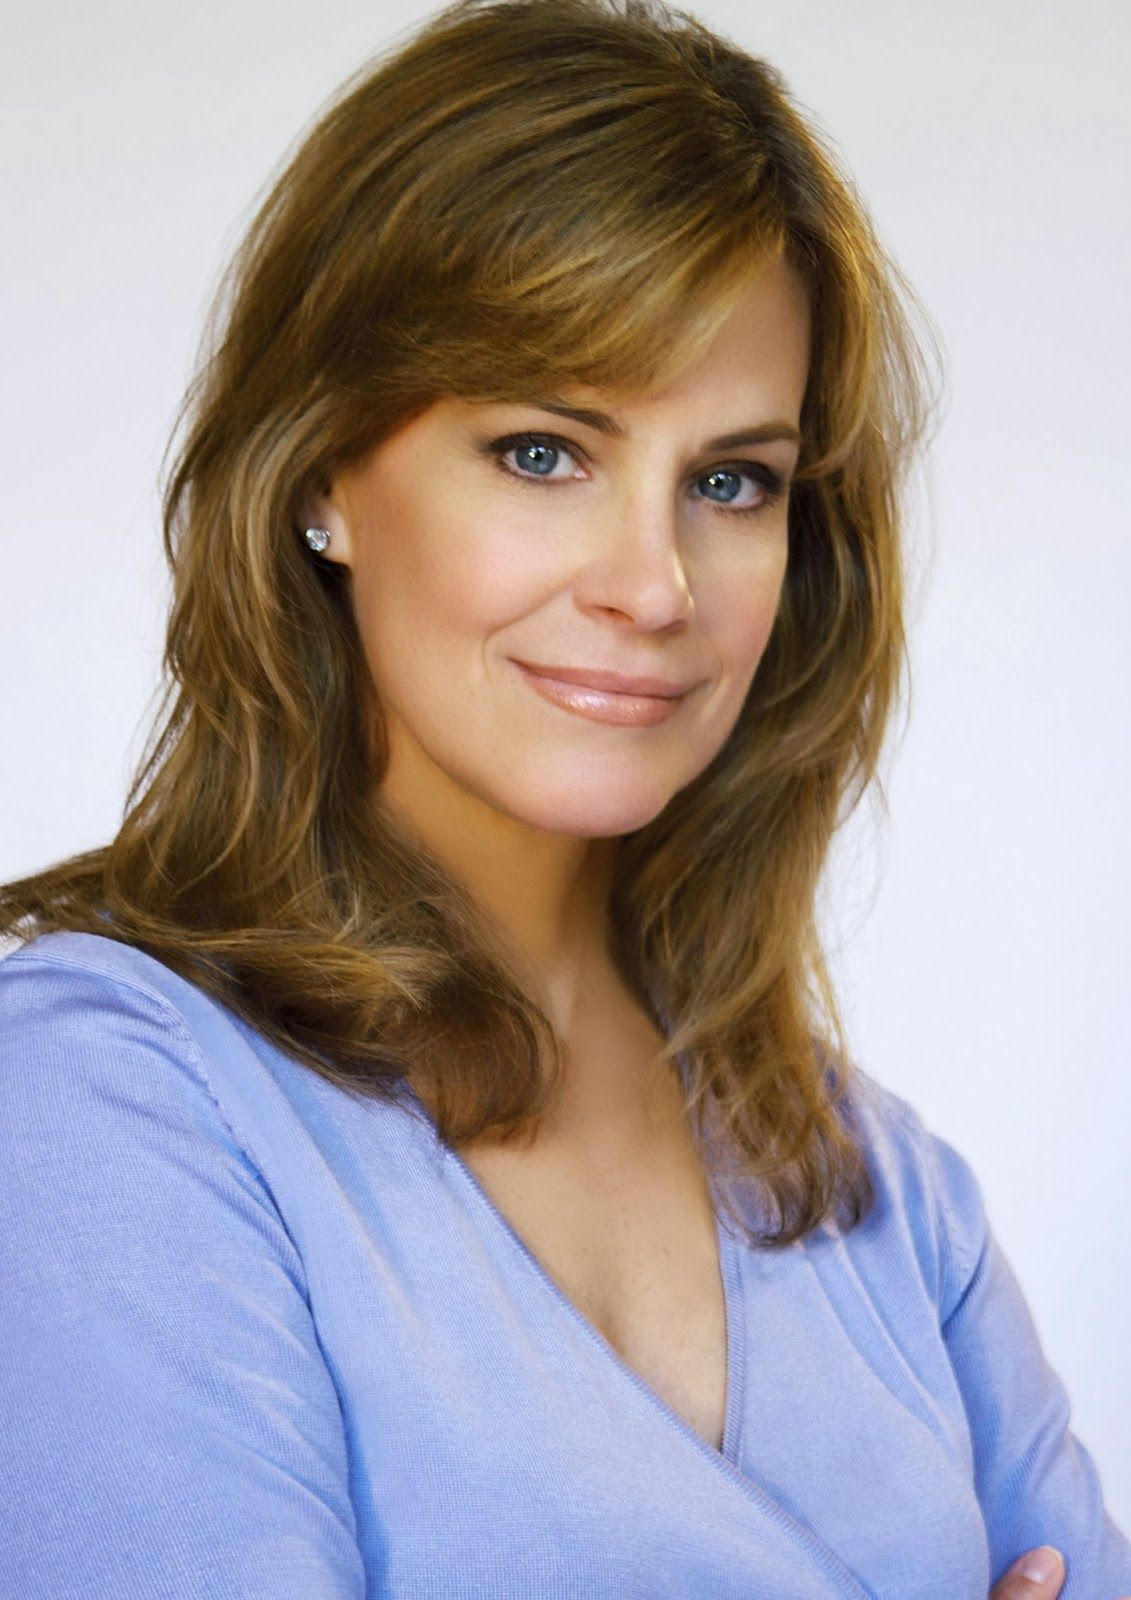 catherine mary stewart wikicatherine mary stewart filmography, catherine mary stewart wikipedia, catherine mary stewart movies, catherine mary stewart, catherine mary stewart wiki, catherine mary stewart net worth, catherine mary stewart imdb, catherine mary stewart nudography, catherine mary stewart days of our lives, catherine mary stewart measurements, catherine mary stewart mr skin, catherine mary stewart posters, catherine mary stewart bikini, catherine mary stewart age, catherine mary stewart films, catherine mary stewart twitter, catherine mary stewart ancensored